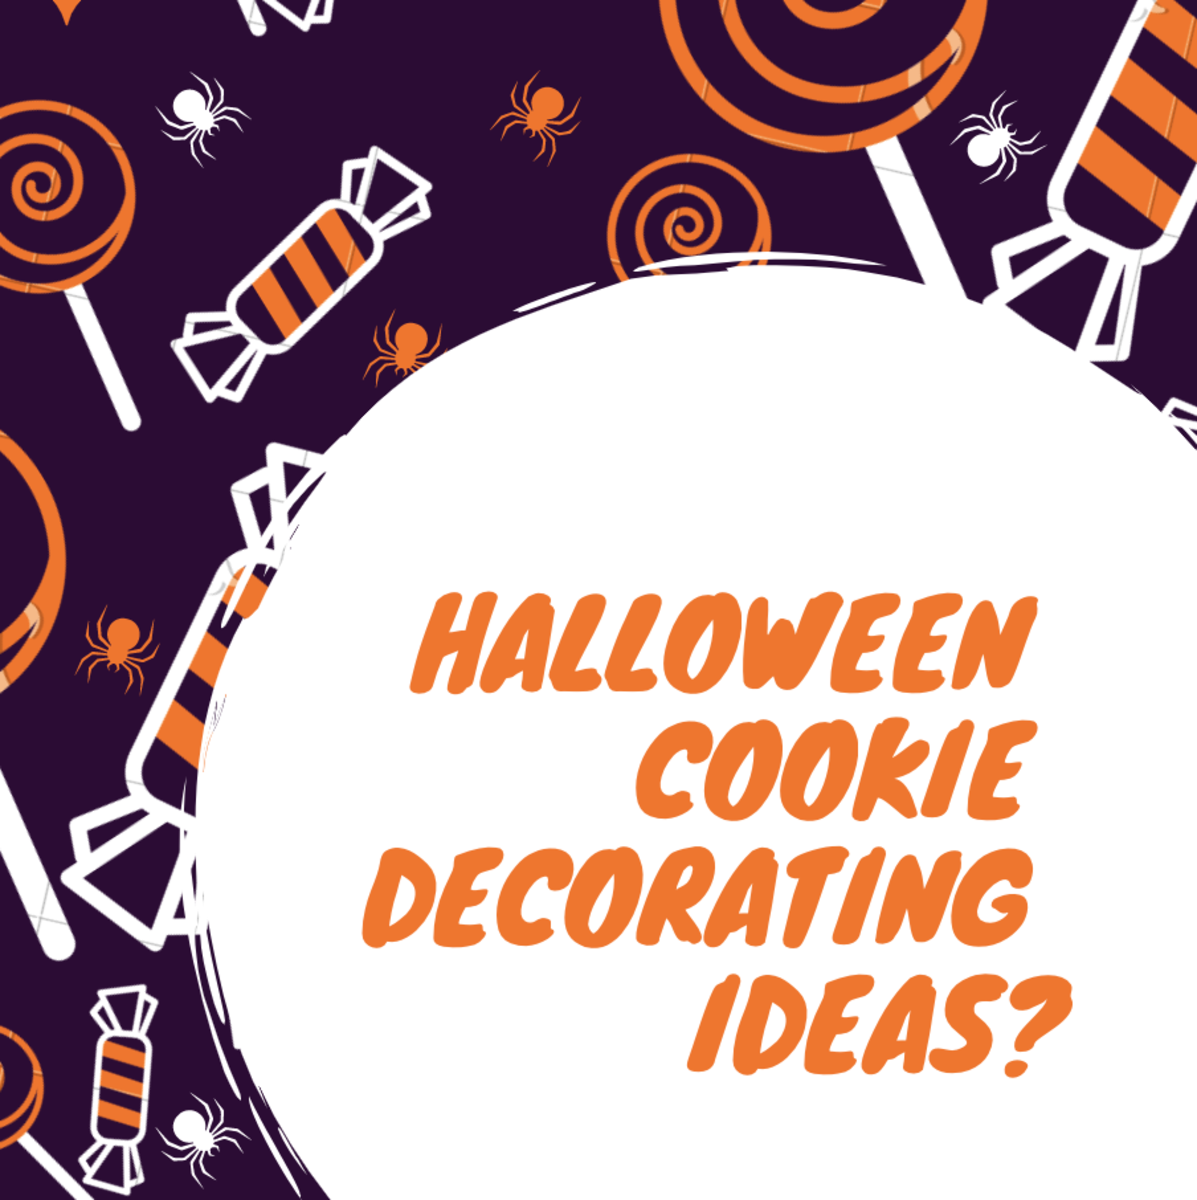 17 Halloween Cookie Decorating Ideas